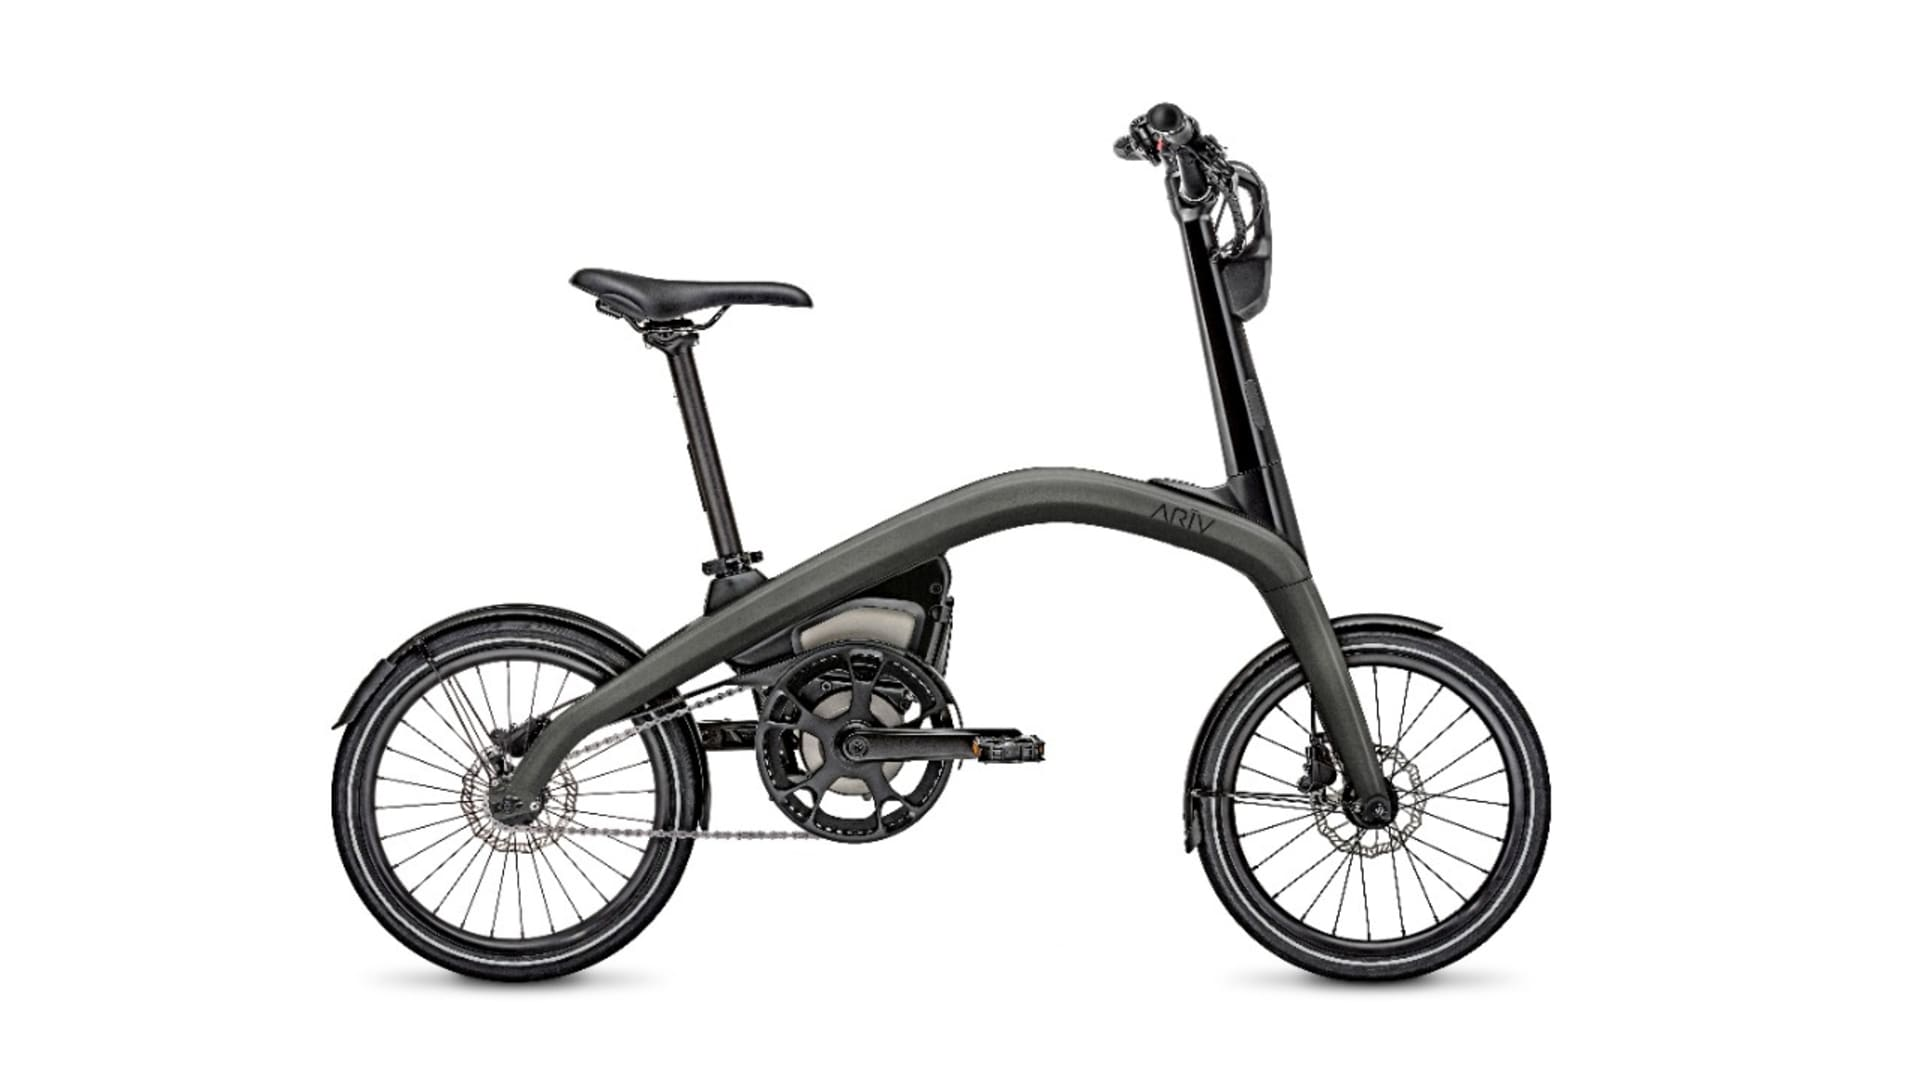 The ARĪV Meld compact eBike from General Motors